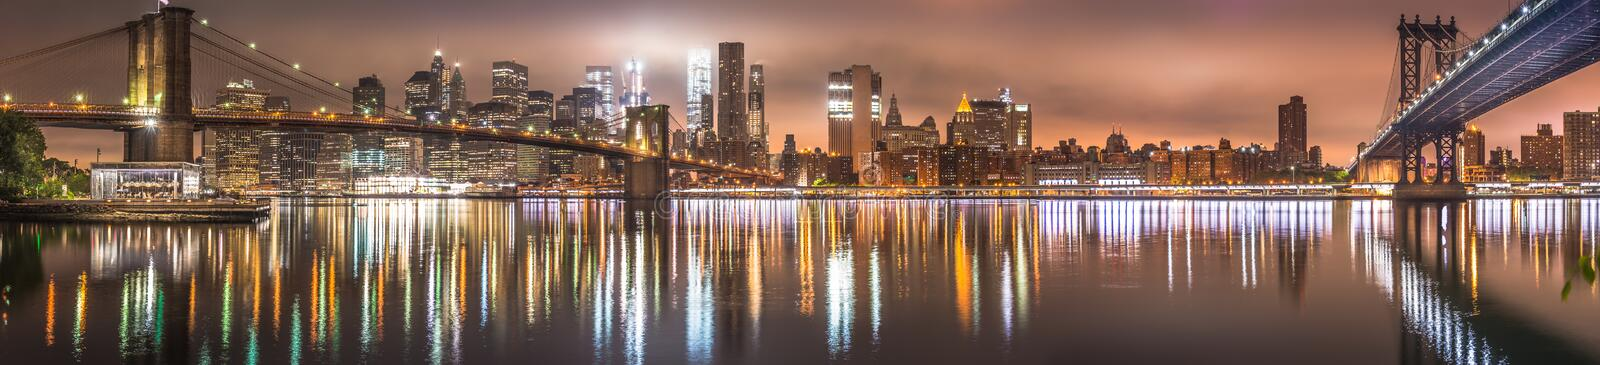 New York City, panorama de nuit, pont de Brooklyn photographie stock libre de droits